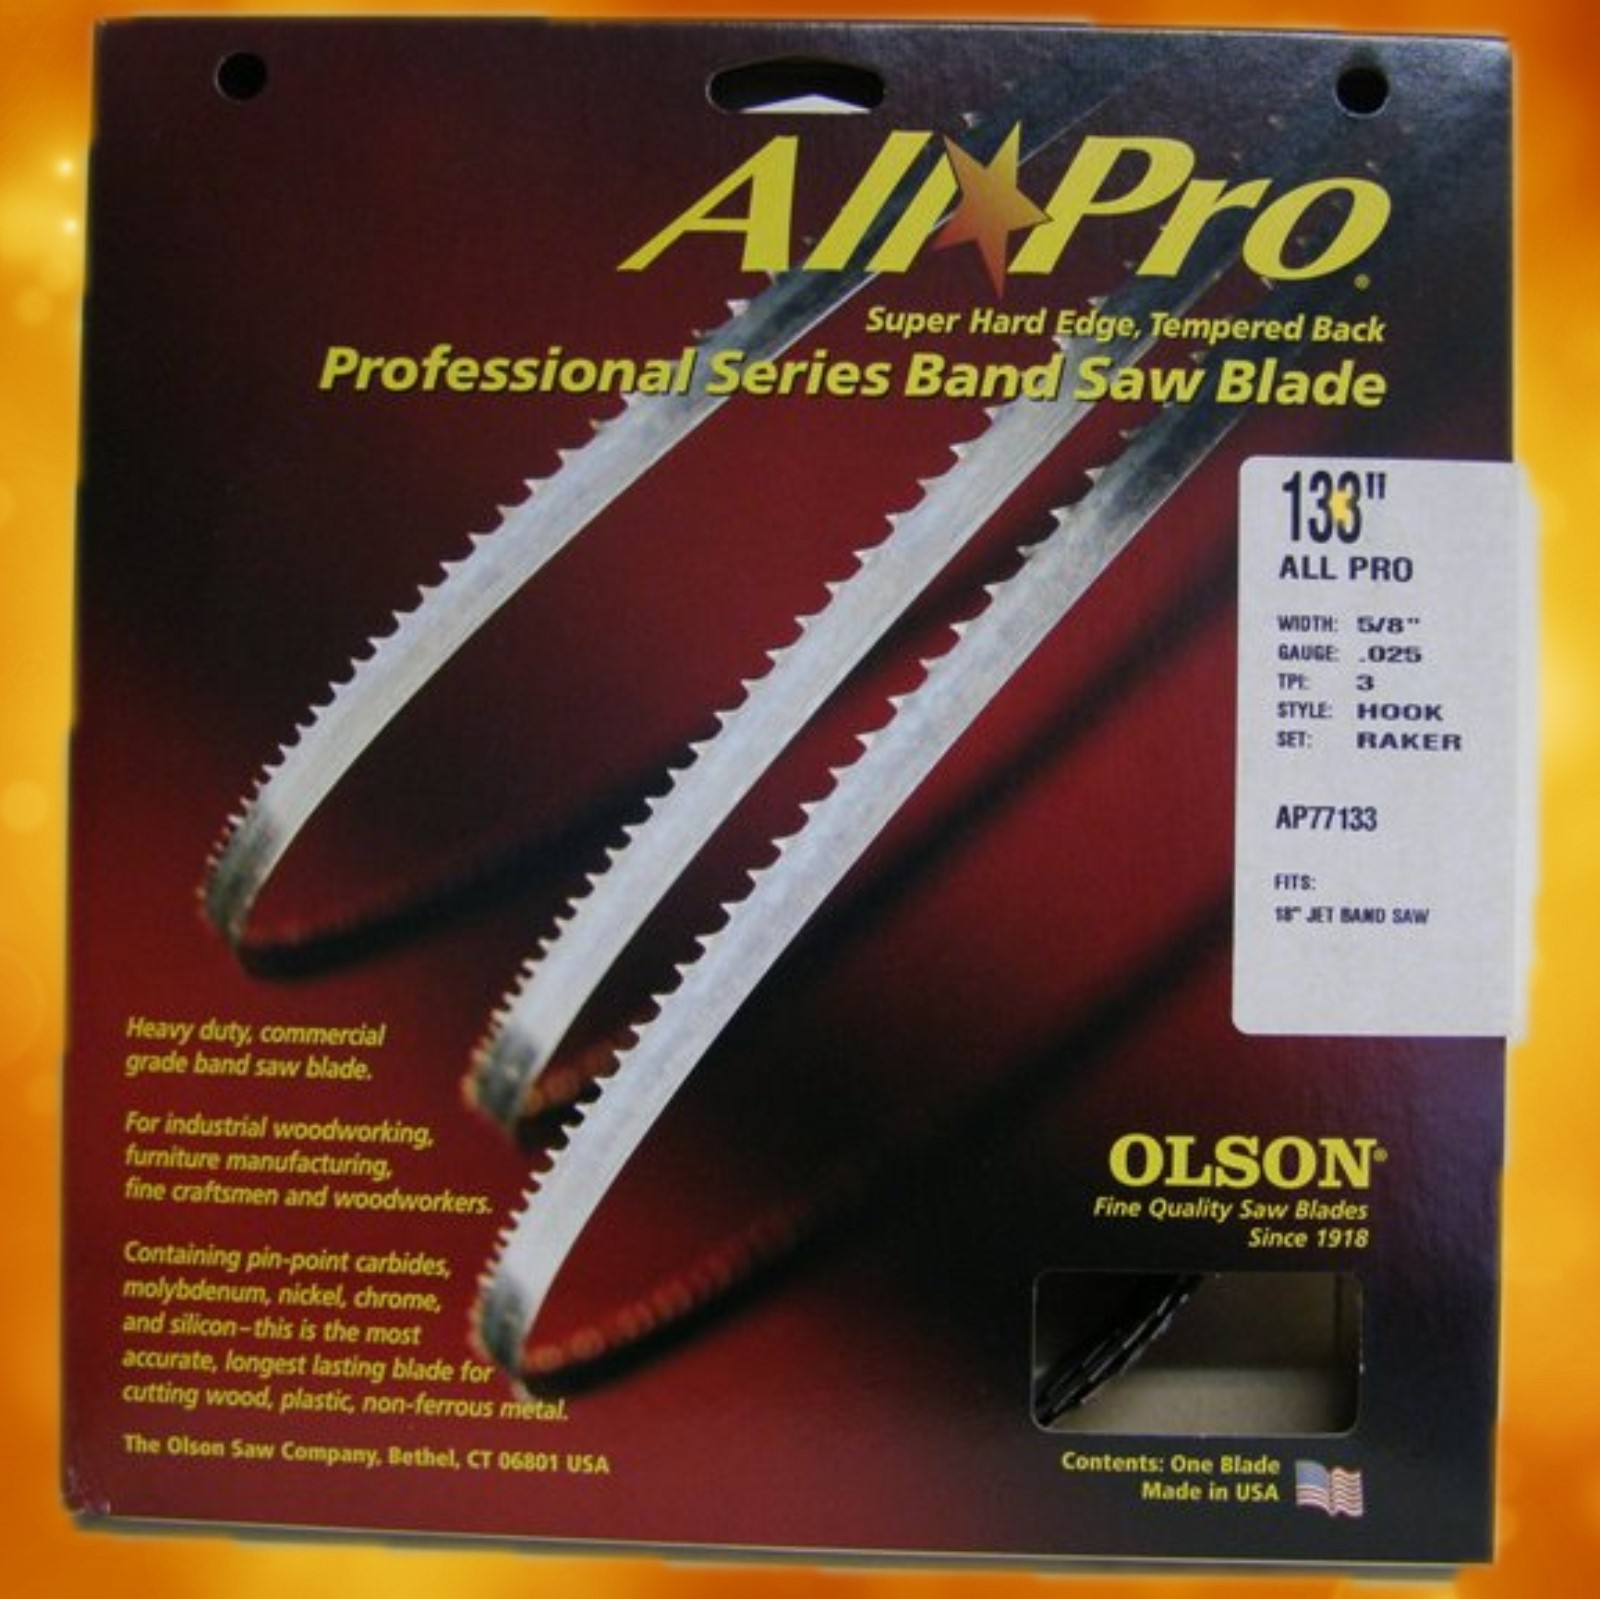 "Olson Band Saw Blade AP77133 Olson All Pro Band Saw Blades 133"" x 5/8"" x.025"" 3 TPI Style Hook AP77133"